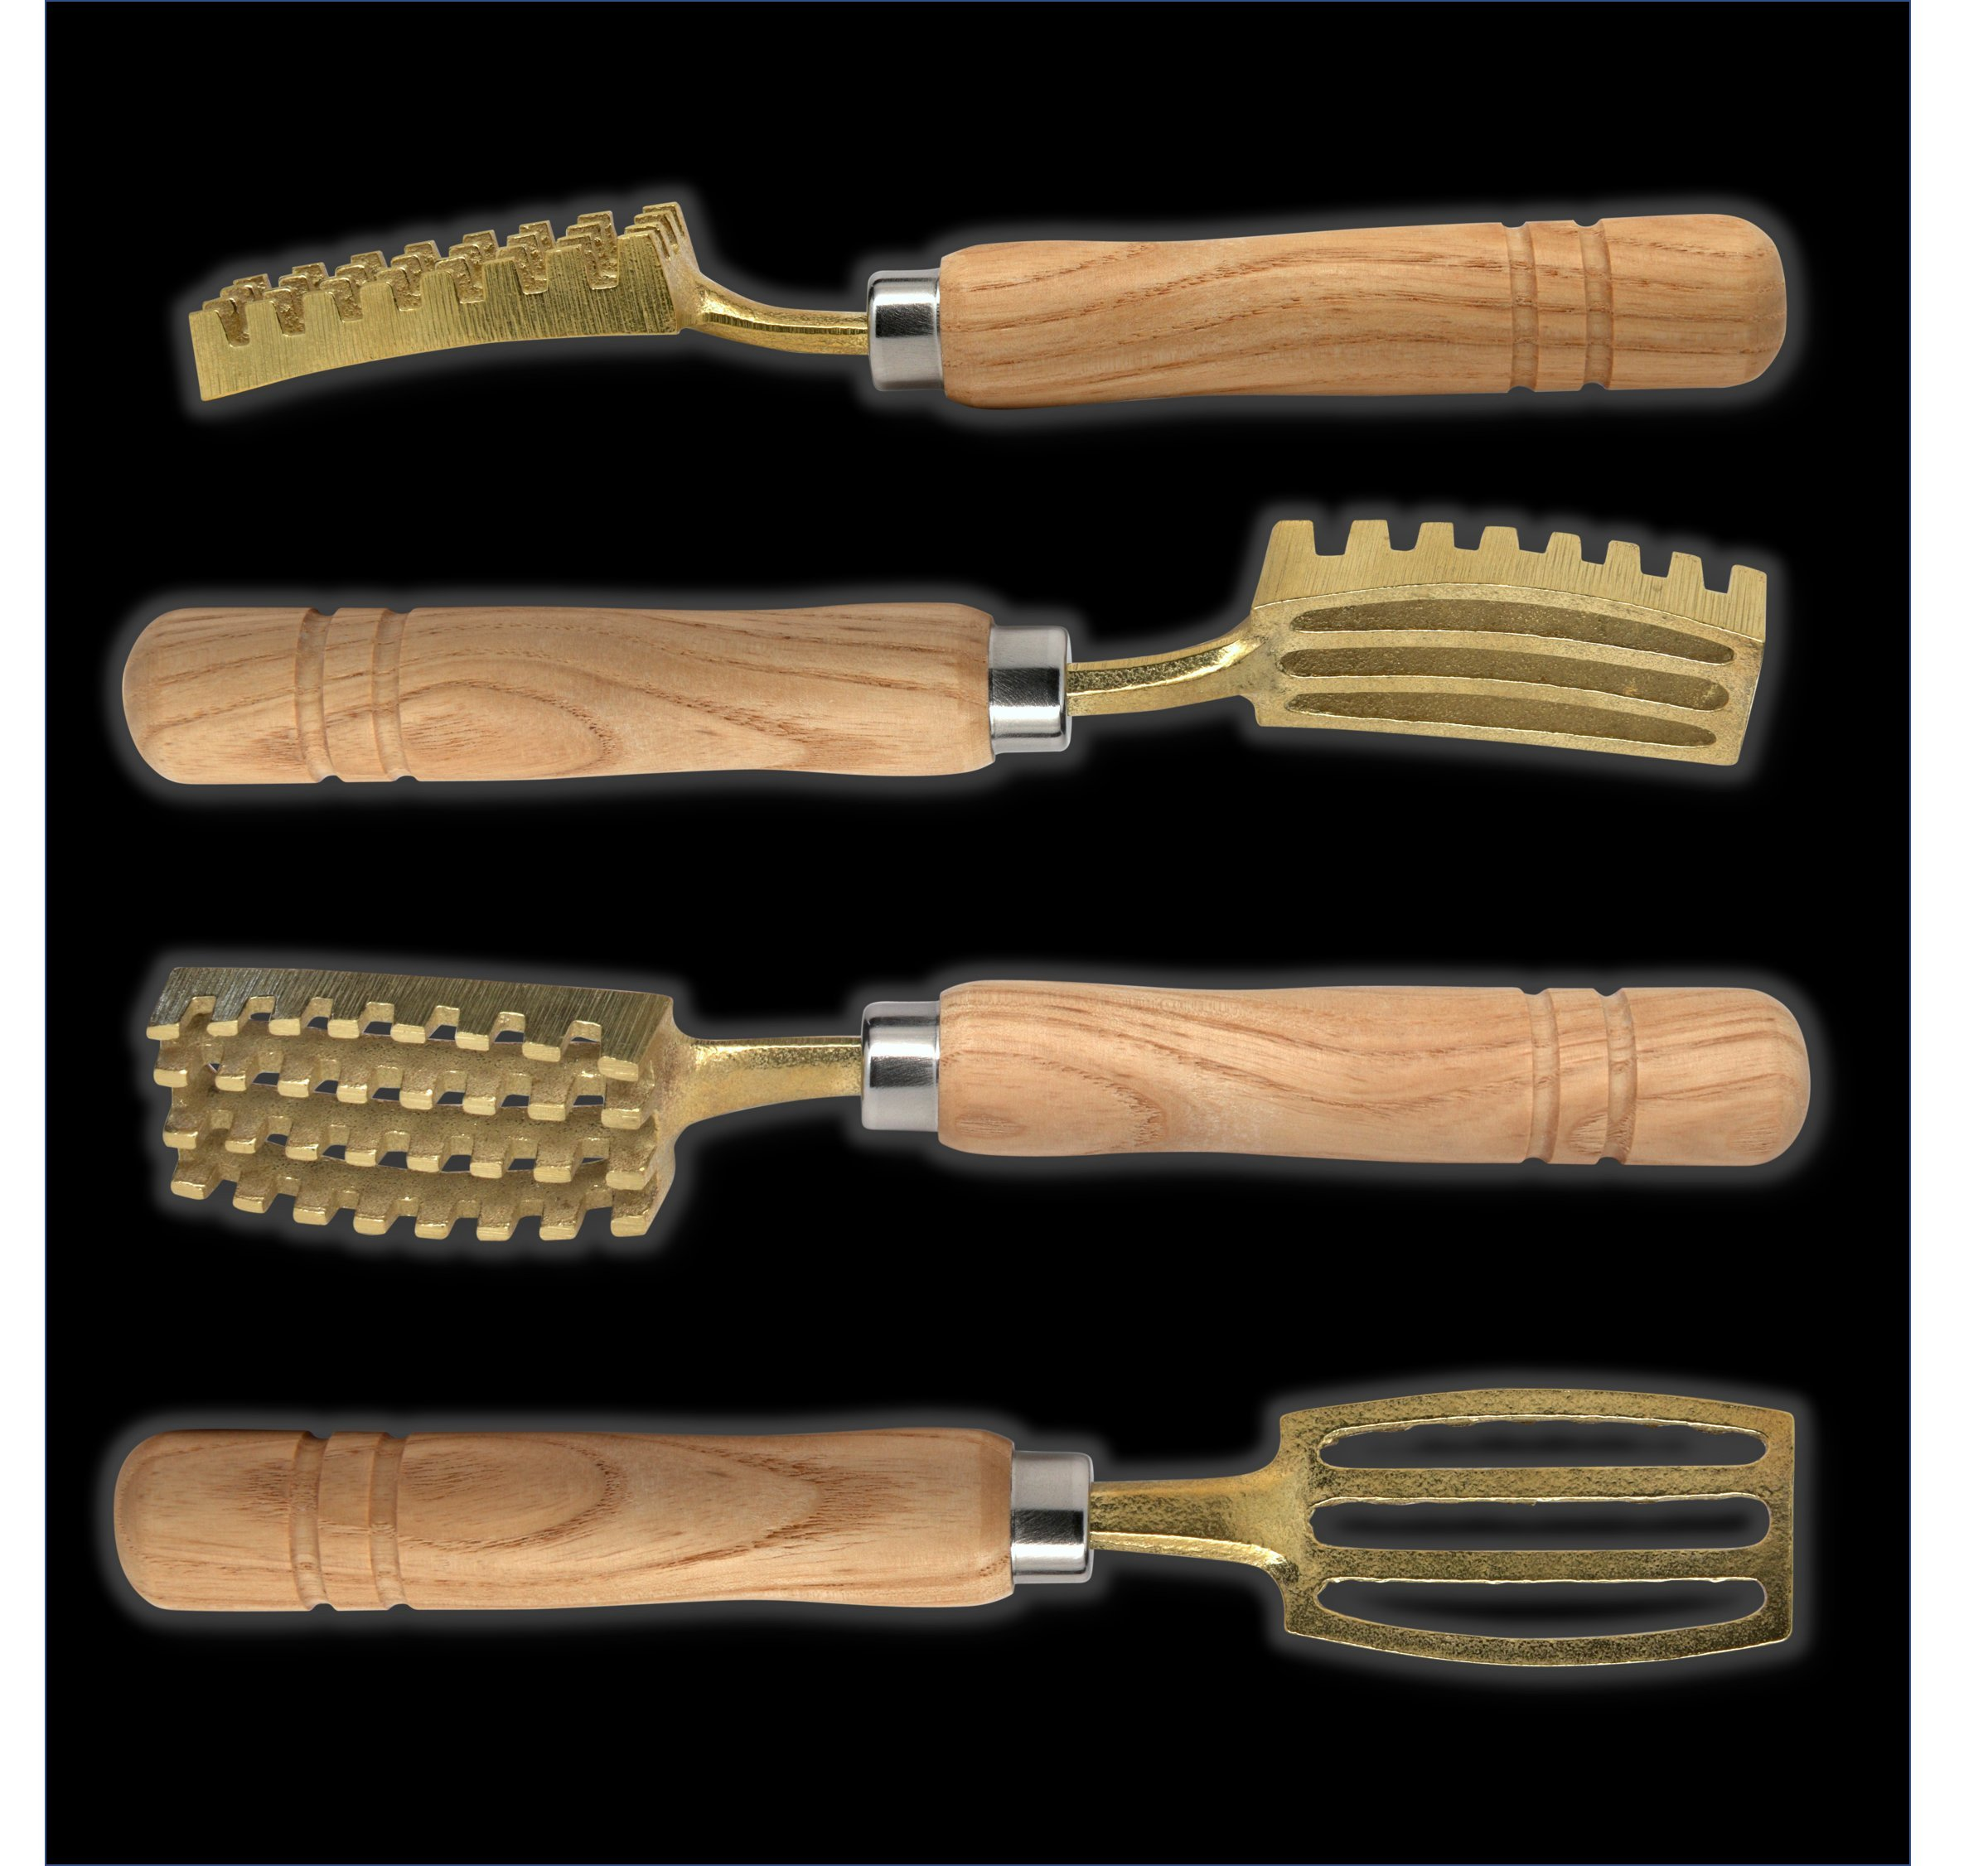 Kwizing Made in Japan Fish Scaler Brush with Brass Serrated Sawtooth and Ergonomic Wooden Handle - Easily Remove Fish Scales Without Fuss Or Mess - Handcrafted by Japanese Artisans by Kwizing (Image #7)